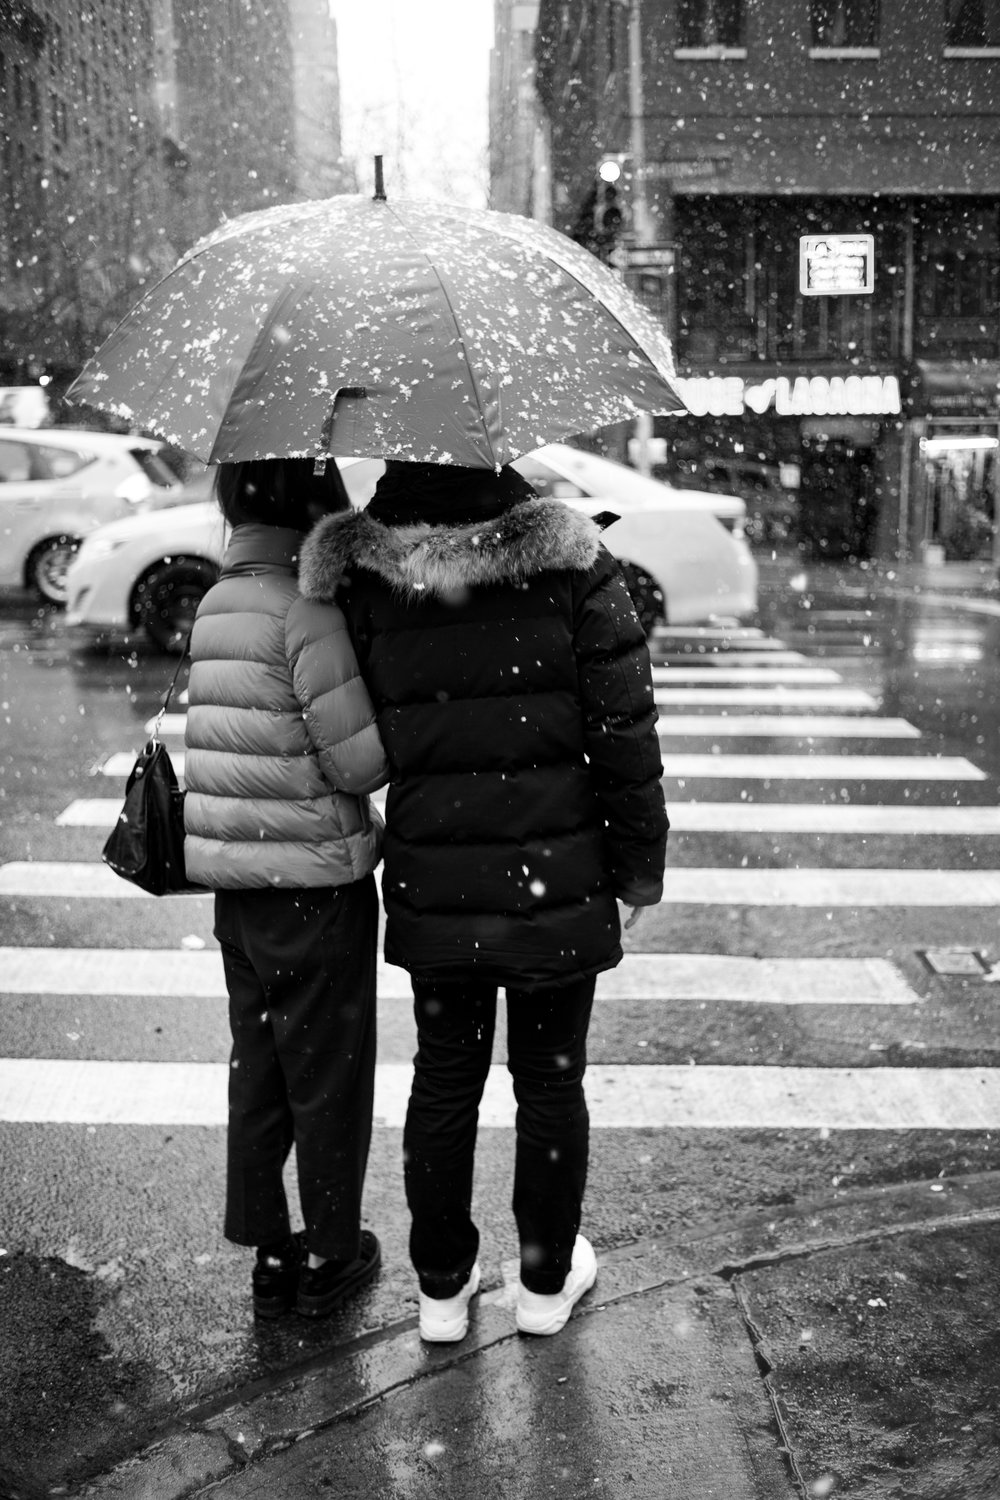 A couple seeks refuge underneath an umbrella during the snowfall